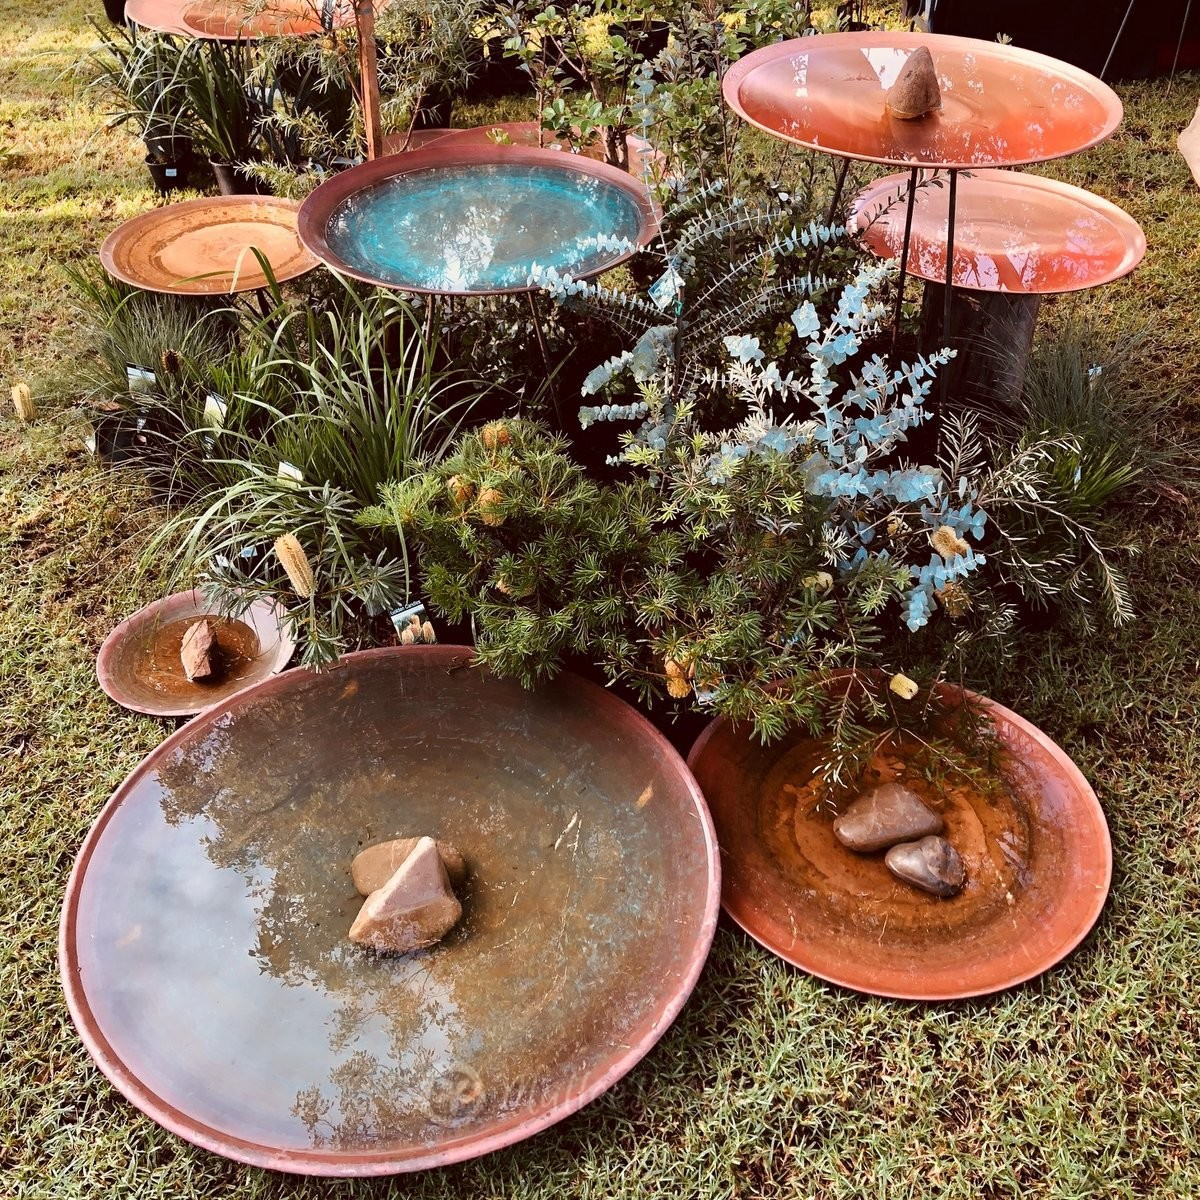 Mother appreciation day: 10% discount on Mallee Spun Copper Dishes